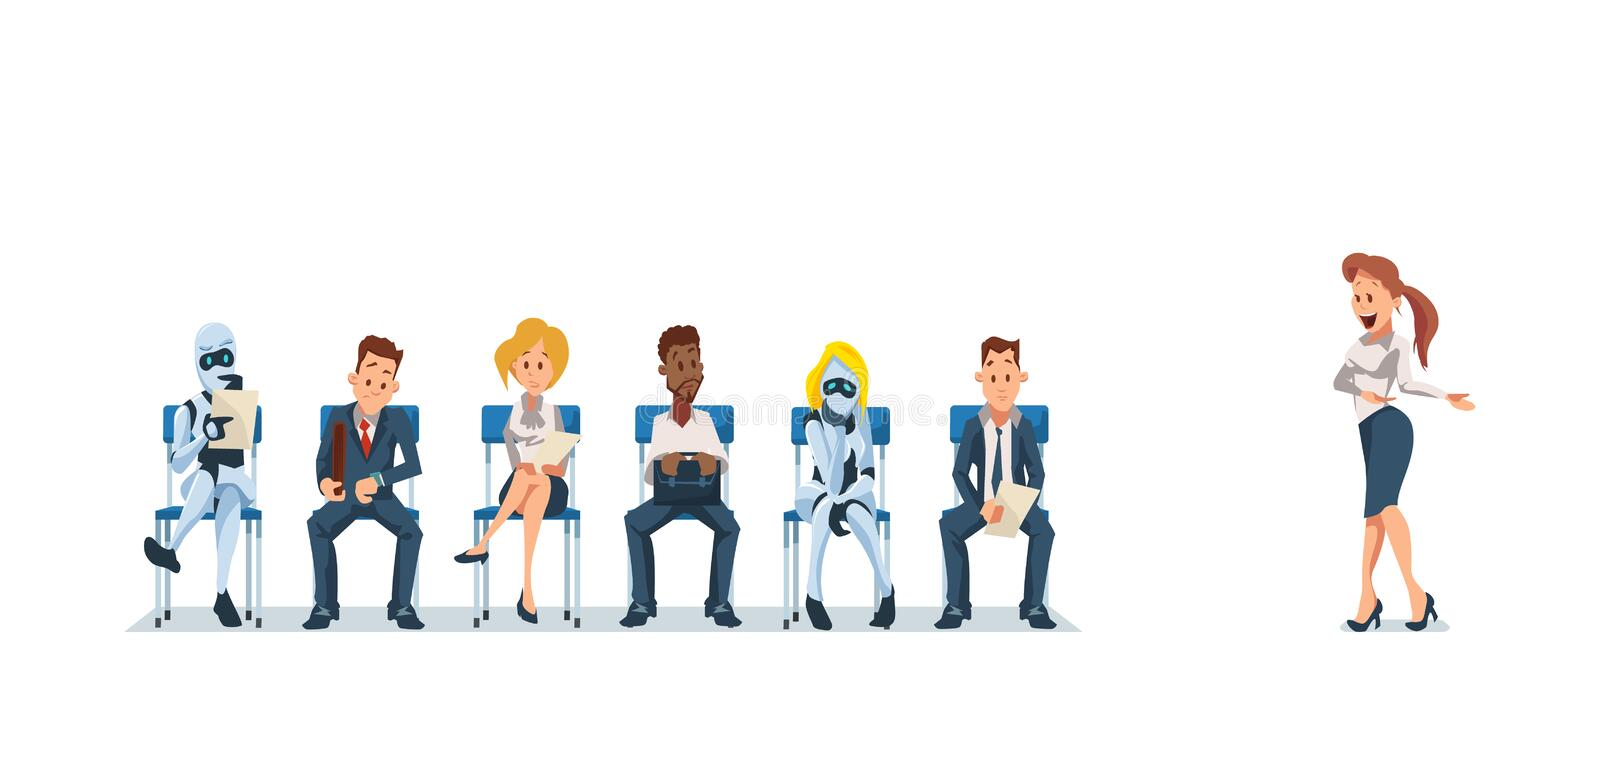 Job Interview Recruiting y robots Vector libre illustration